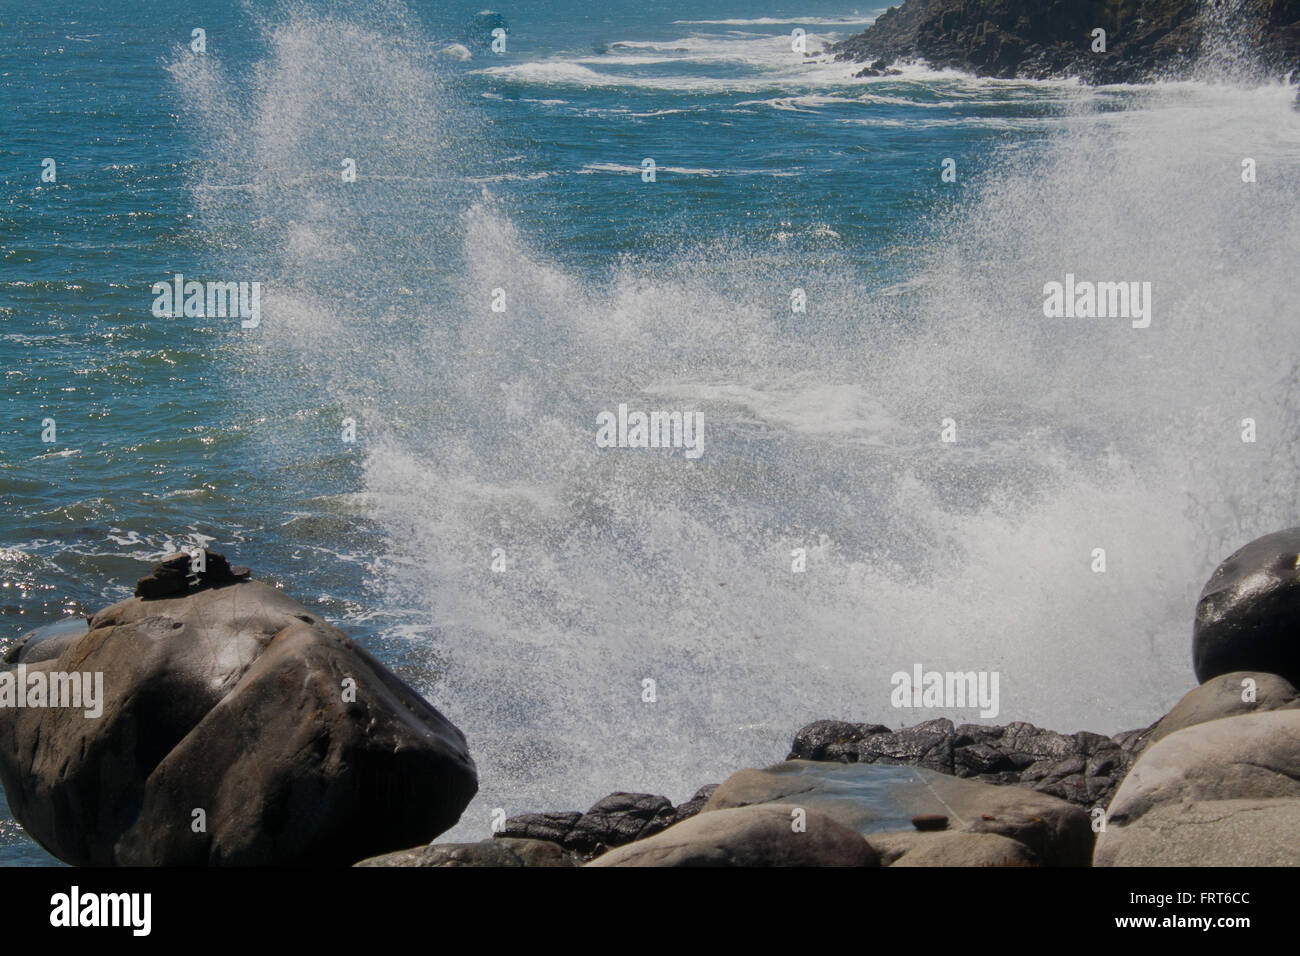 Forces of nature. The splash from a wave crashing the rocks below a cliff. - Stock Image